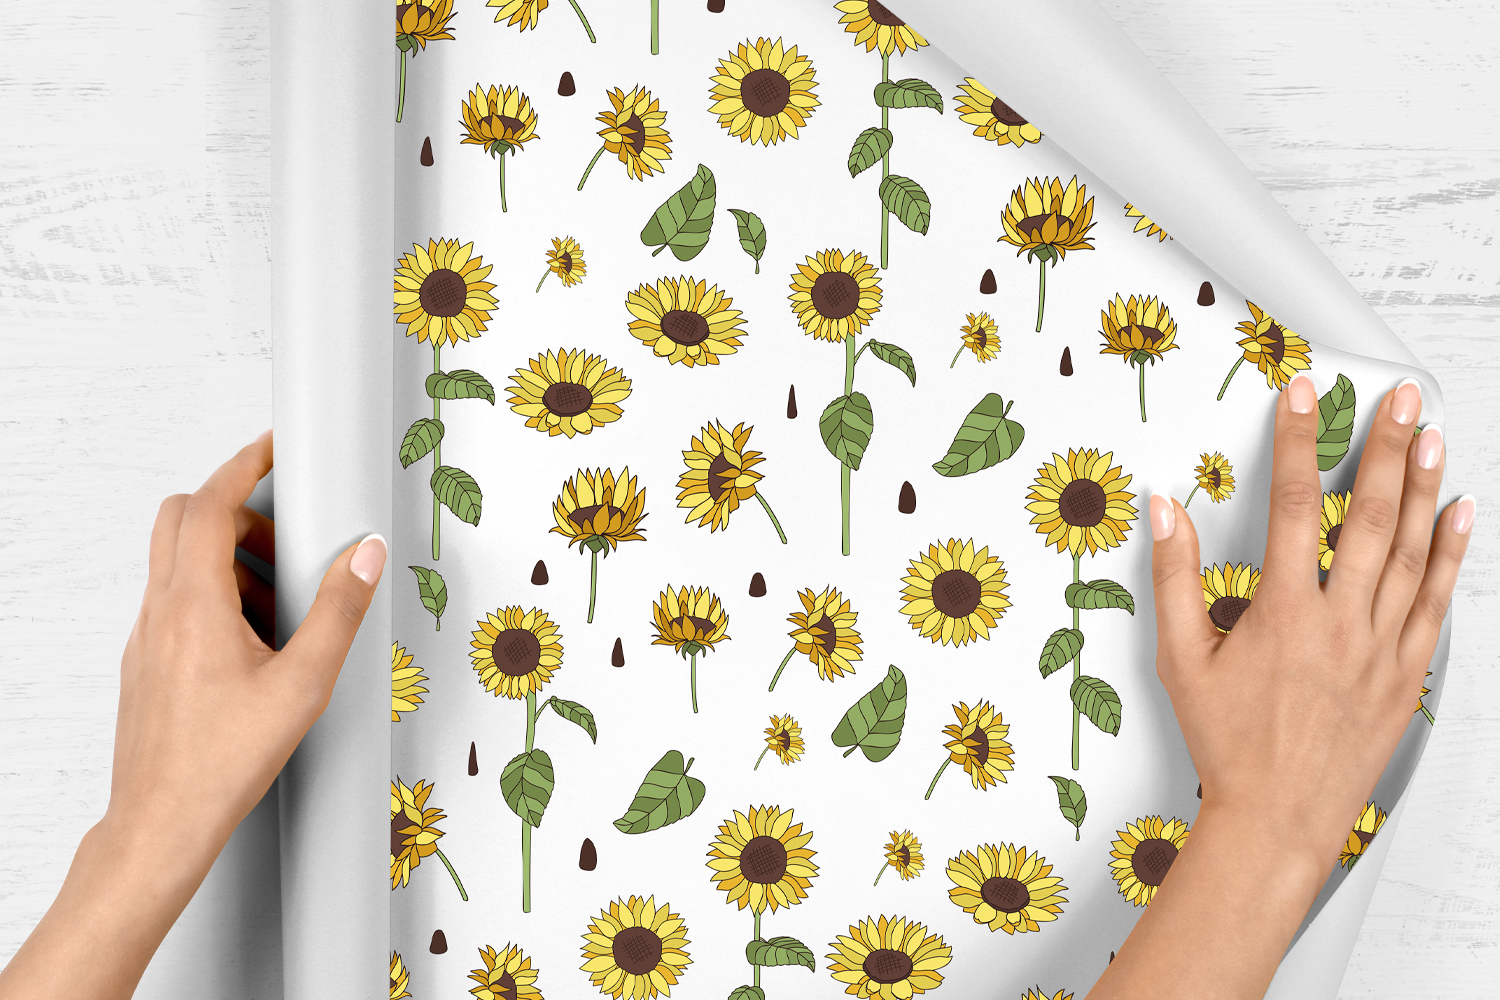 20 Sunflower Clipart Elements example image 4